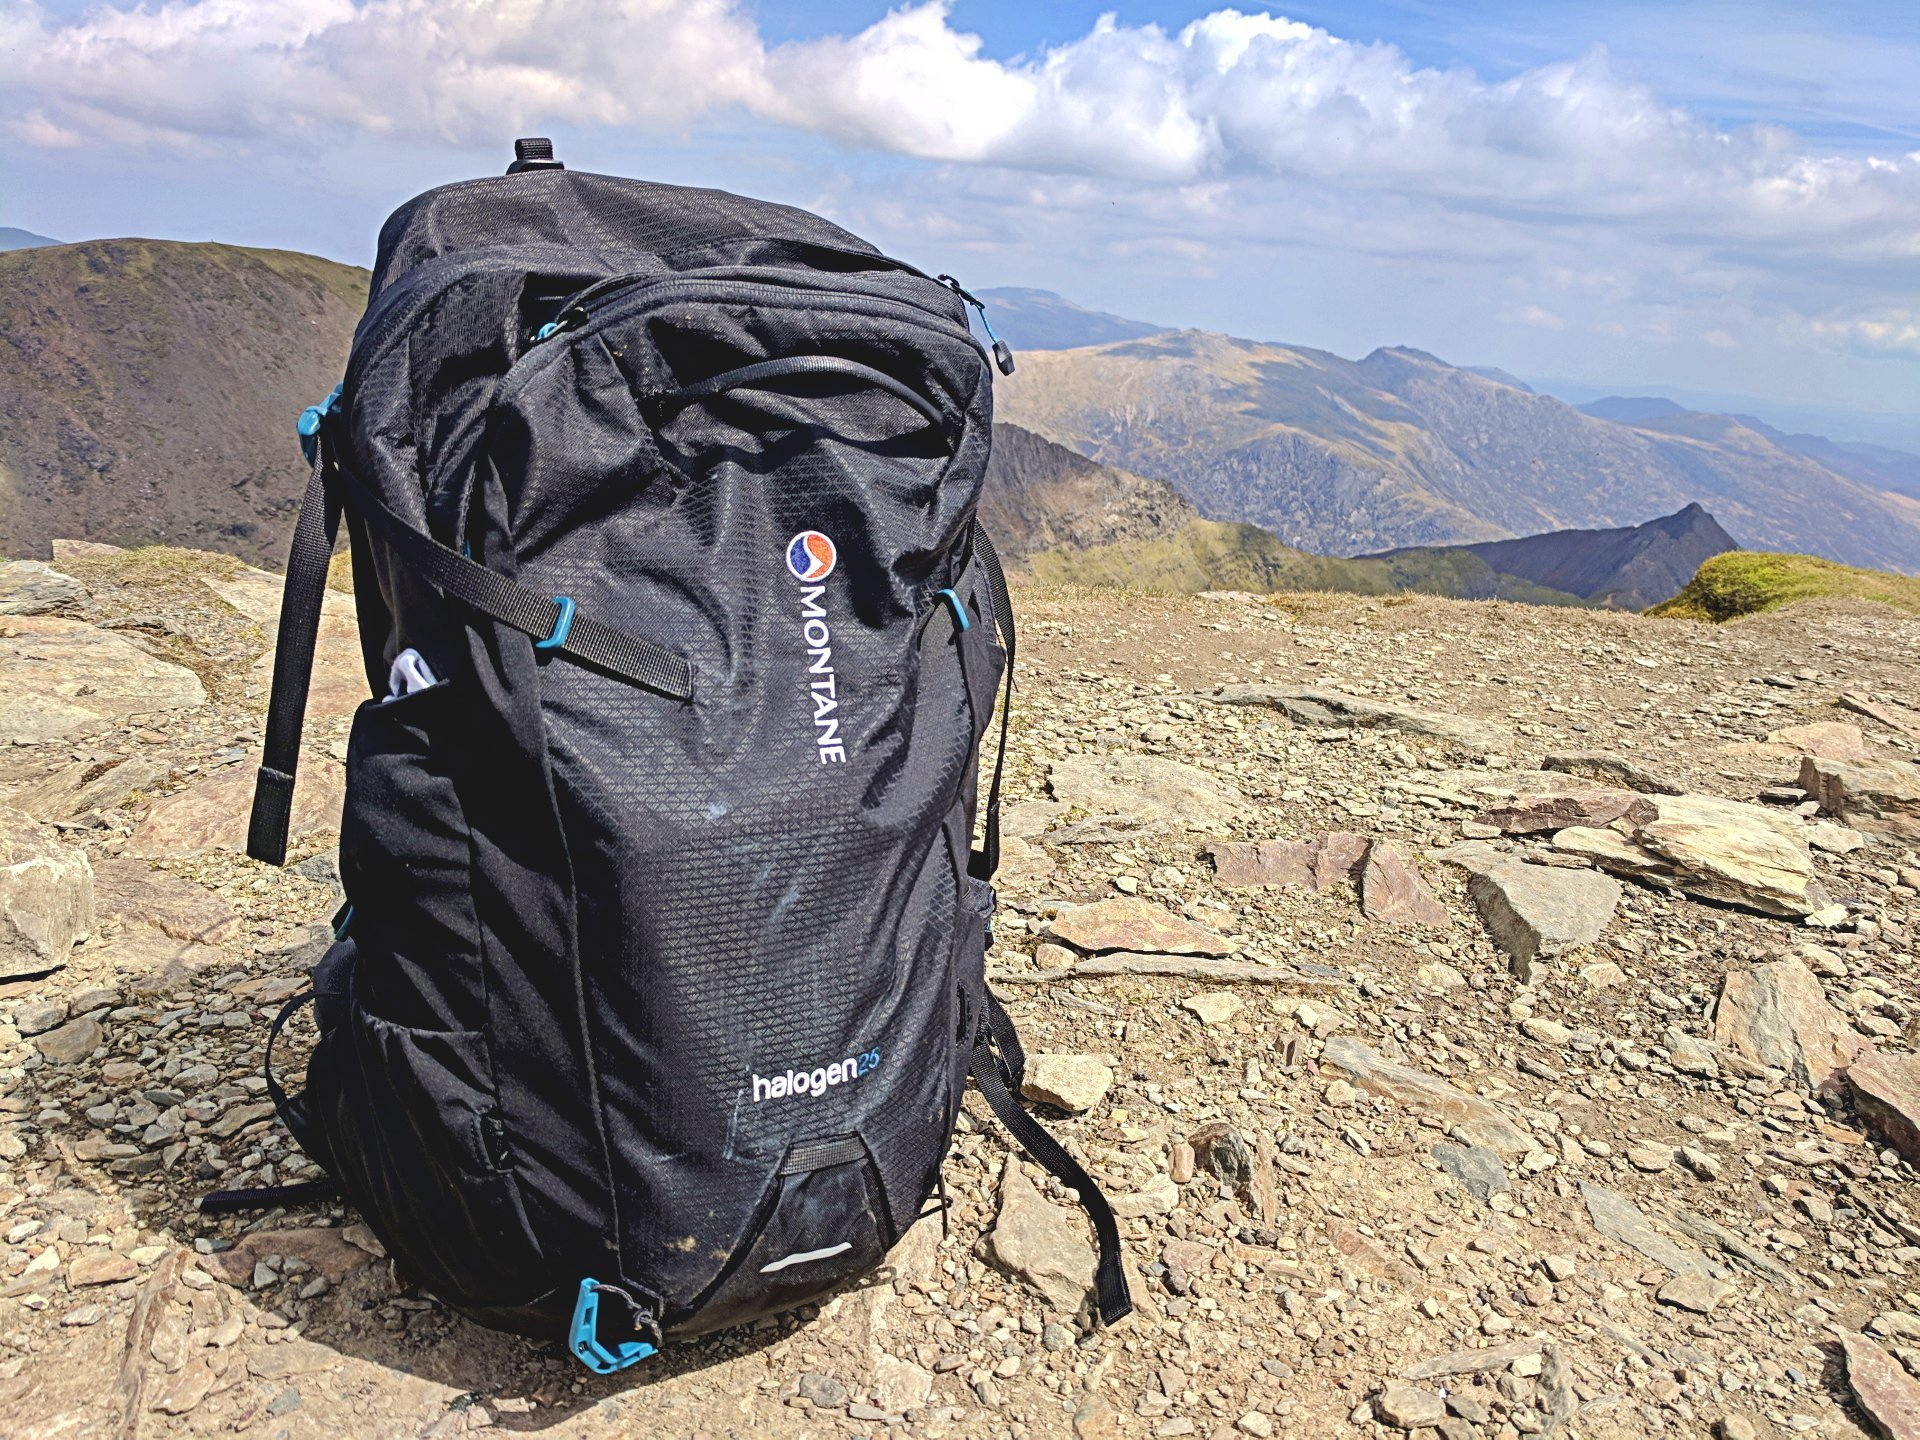 What to Wear and Carry to Safely Walk up Snowdon | Hints and Tips